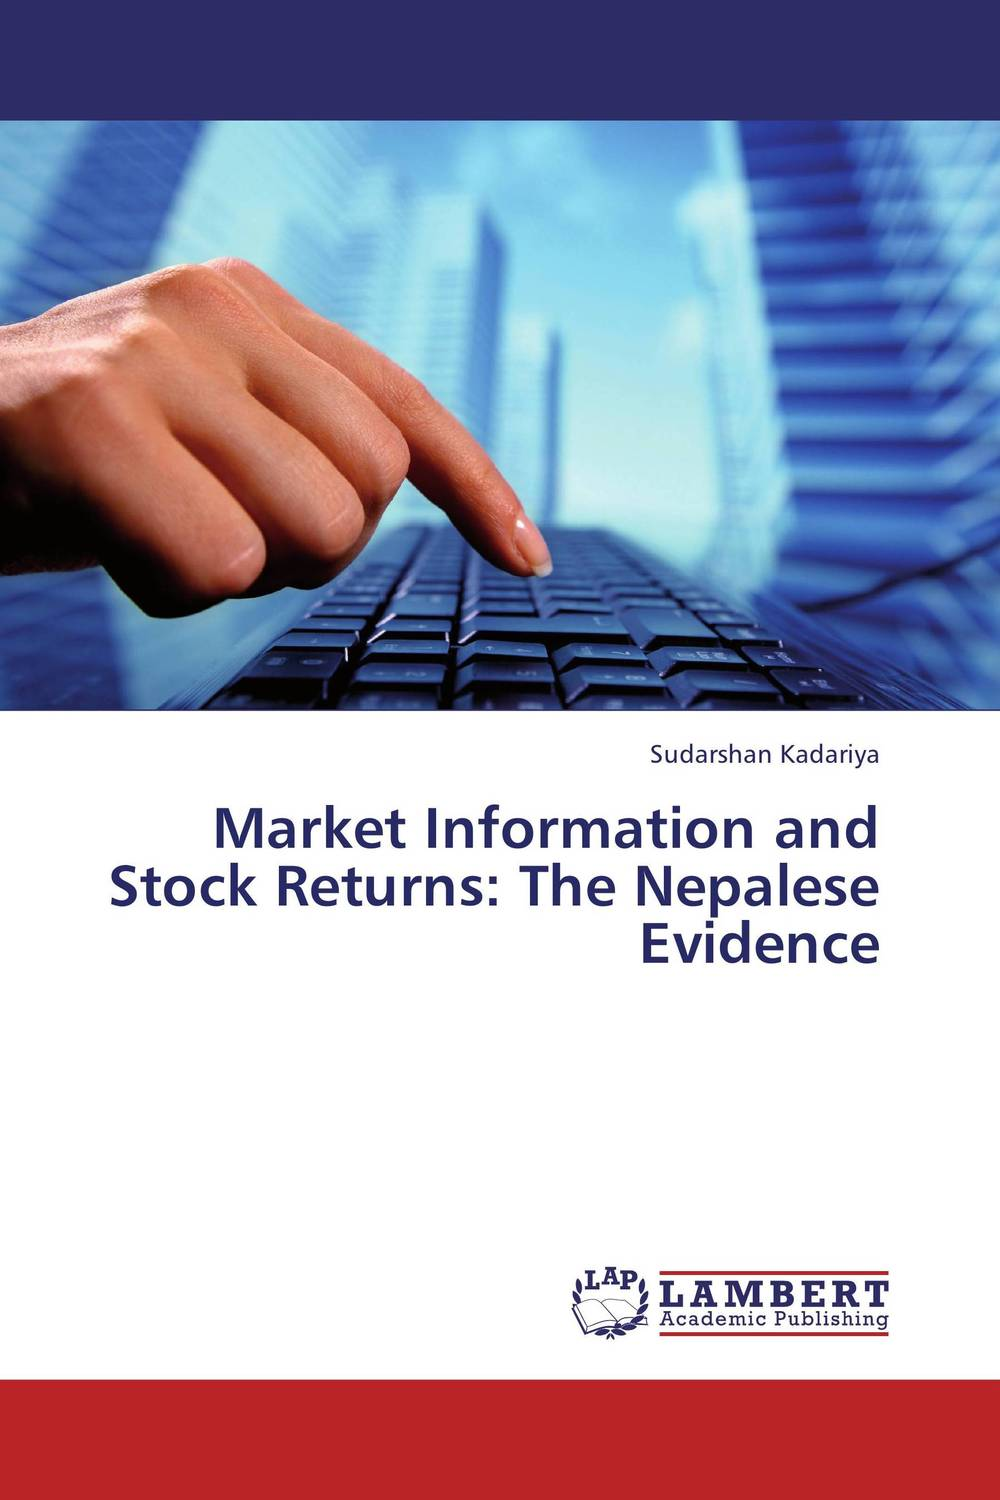 Market Information and Stock Returns: The Nepalese Evidence dr babar zaheer butt and dr kashif ur rehman economic factors and stock returns sectoral analysis